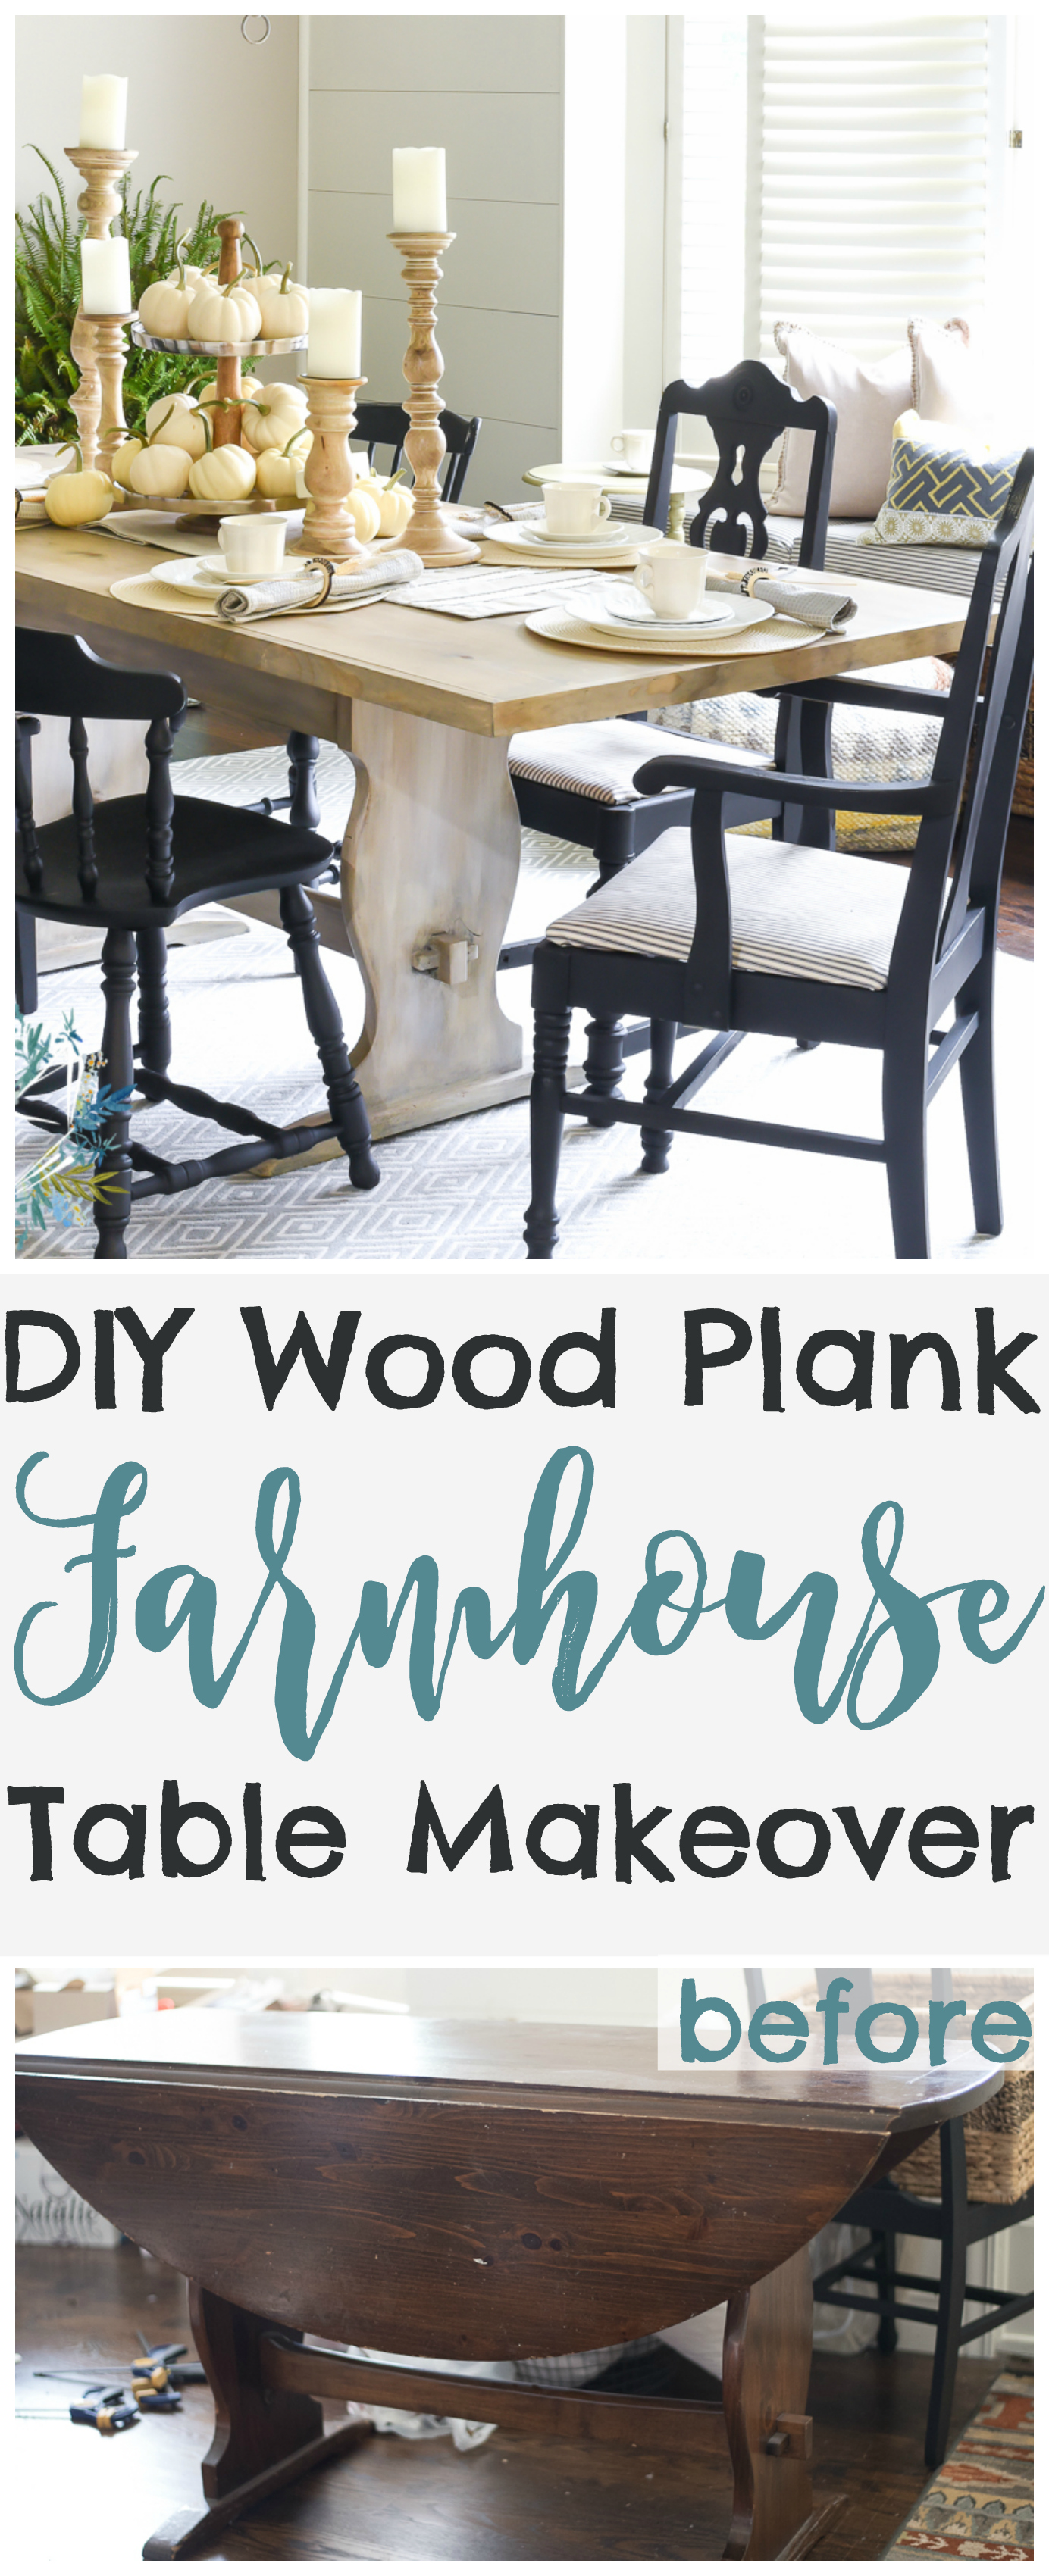 DIY farmhouse table makeover from a thrift store table